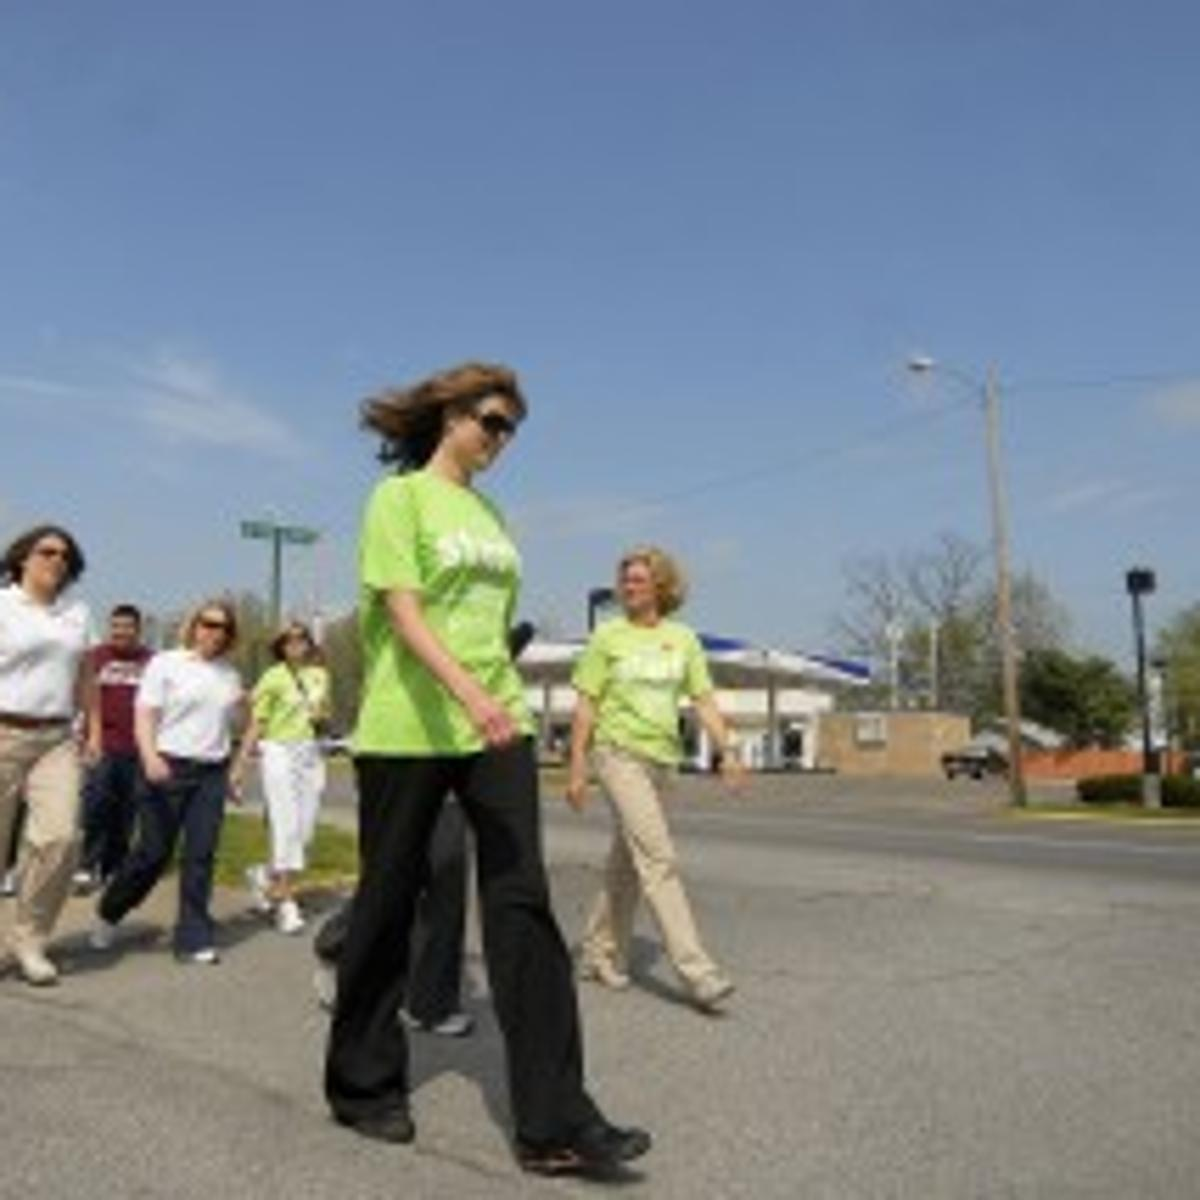 get walking herrin local news thesouthern com the southern illinoisan